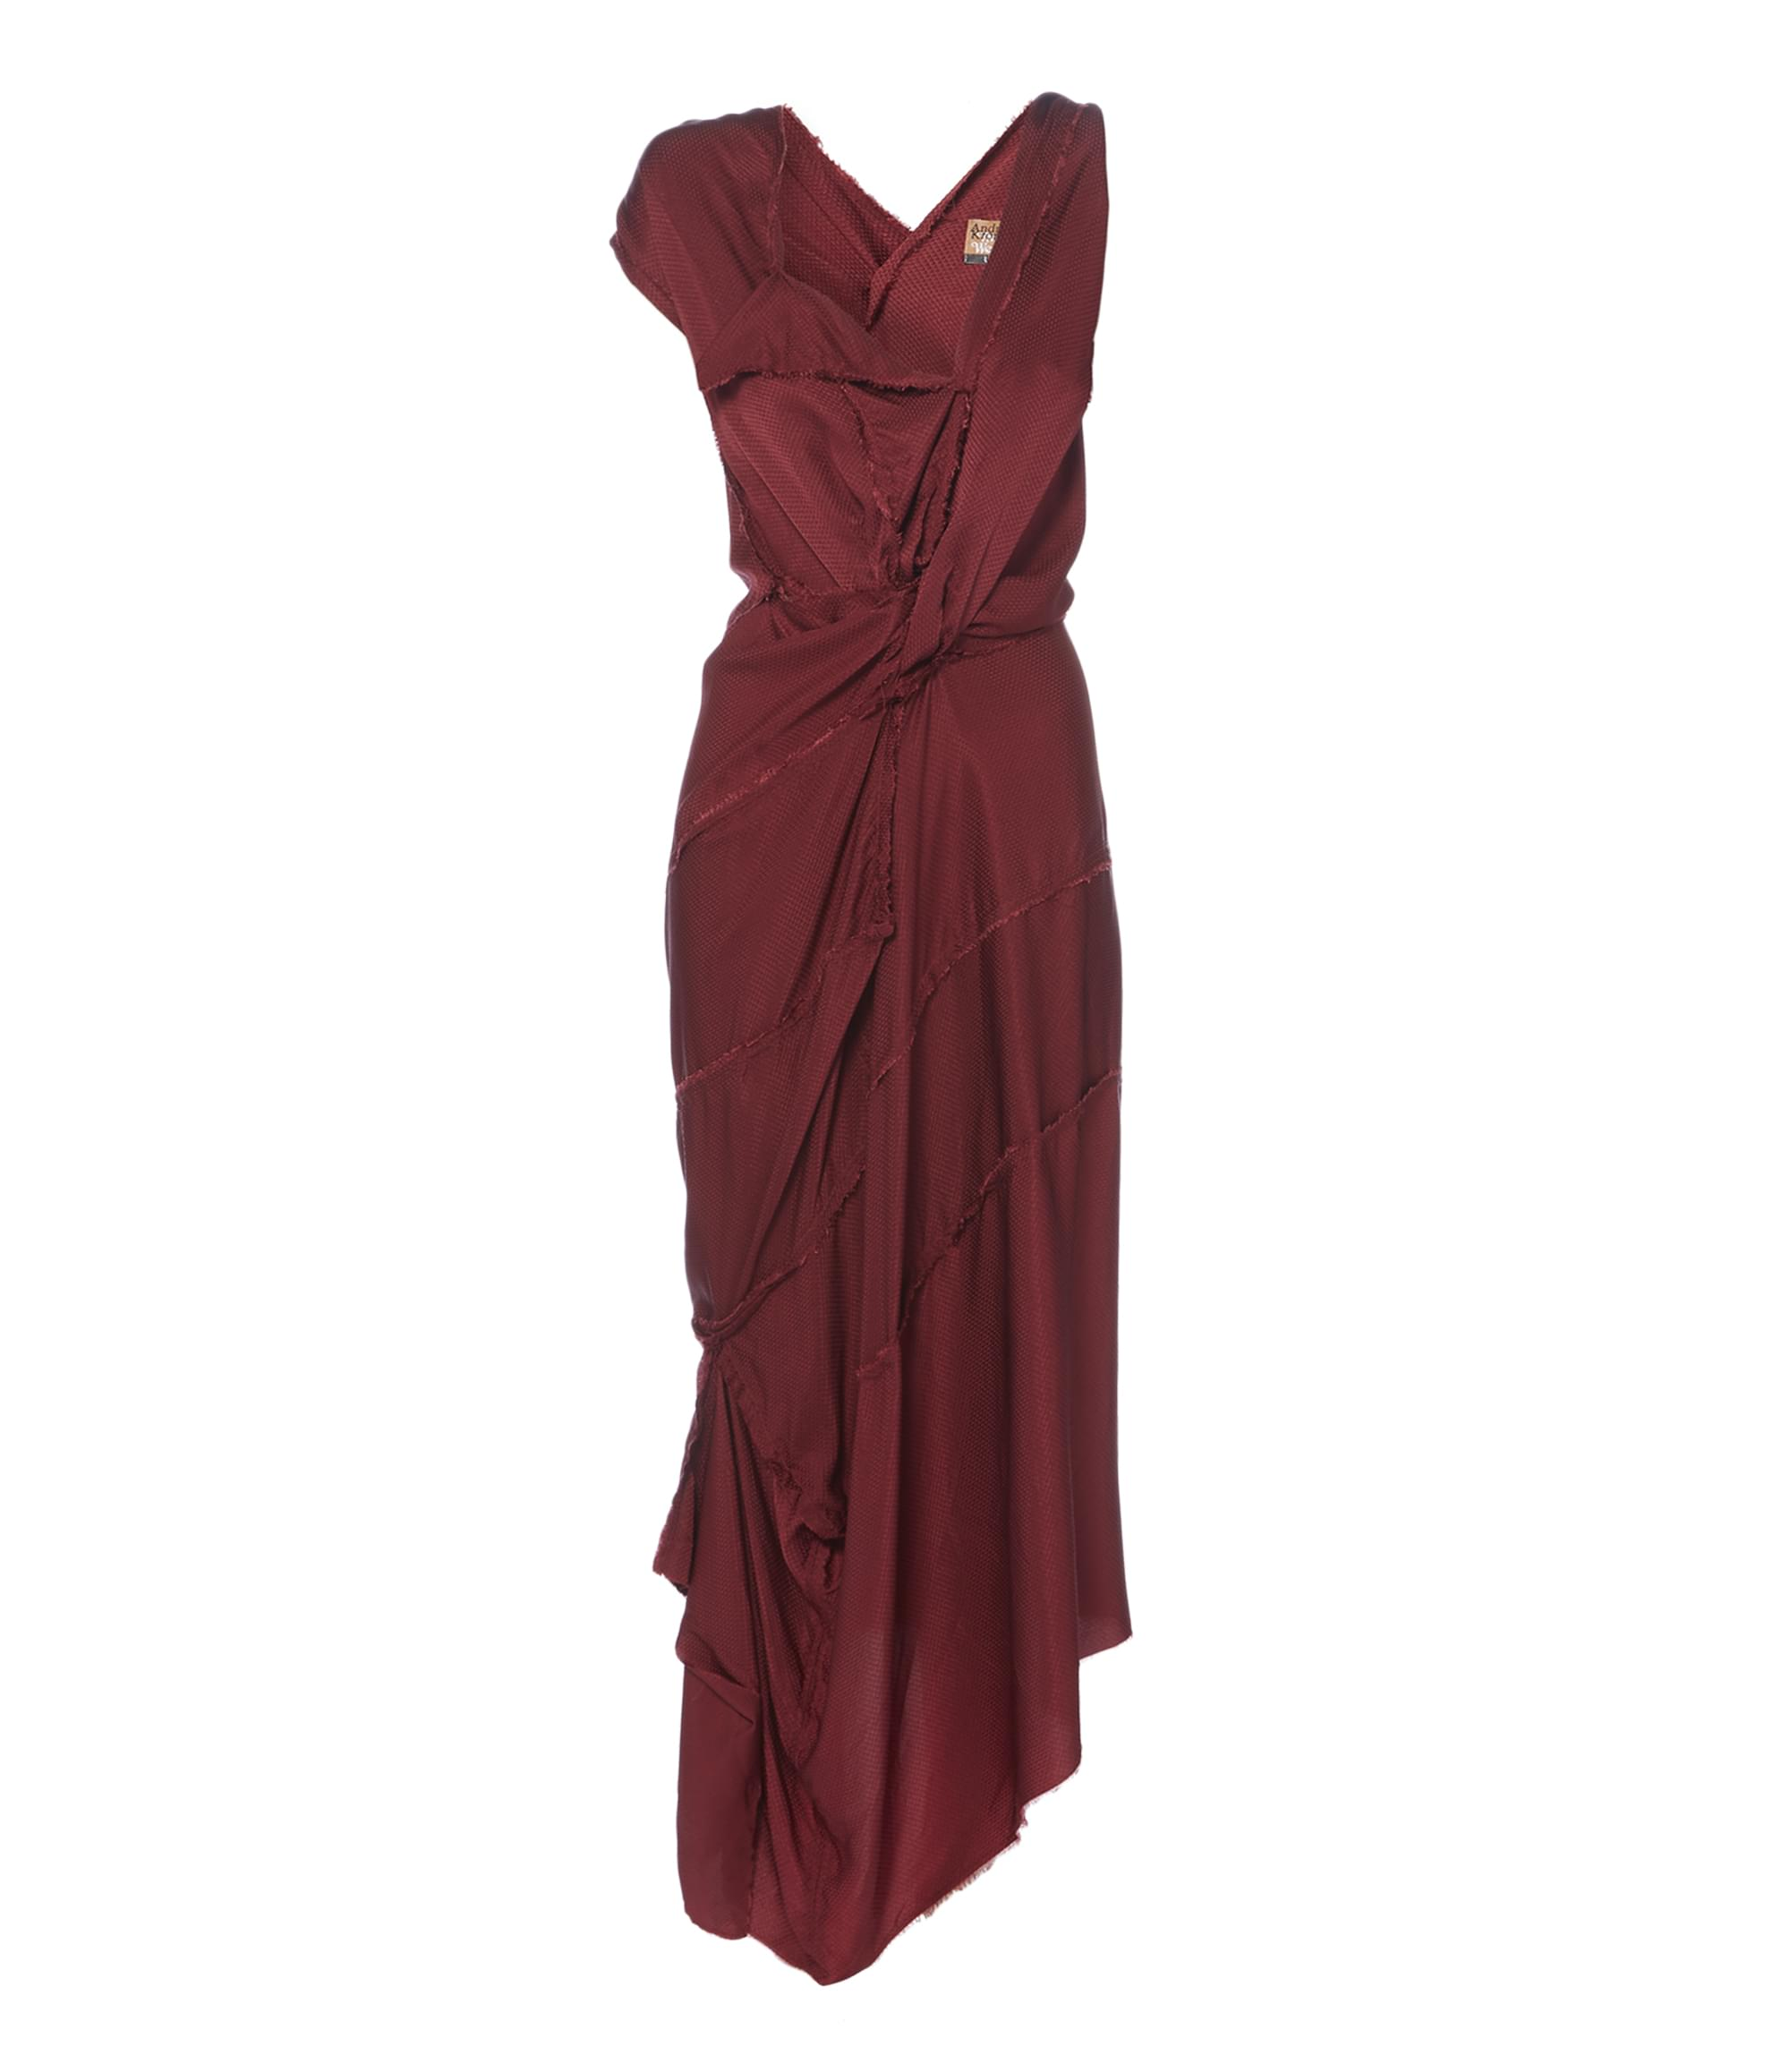 Vivienne Westwood Silk Cartie\u0027 Dress